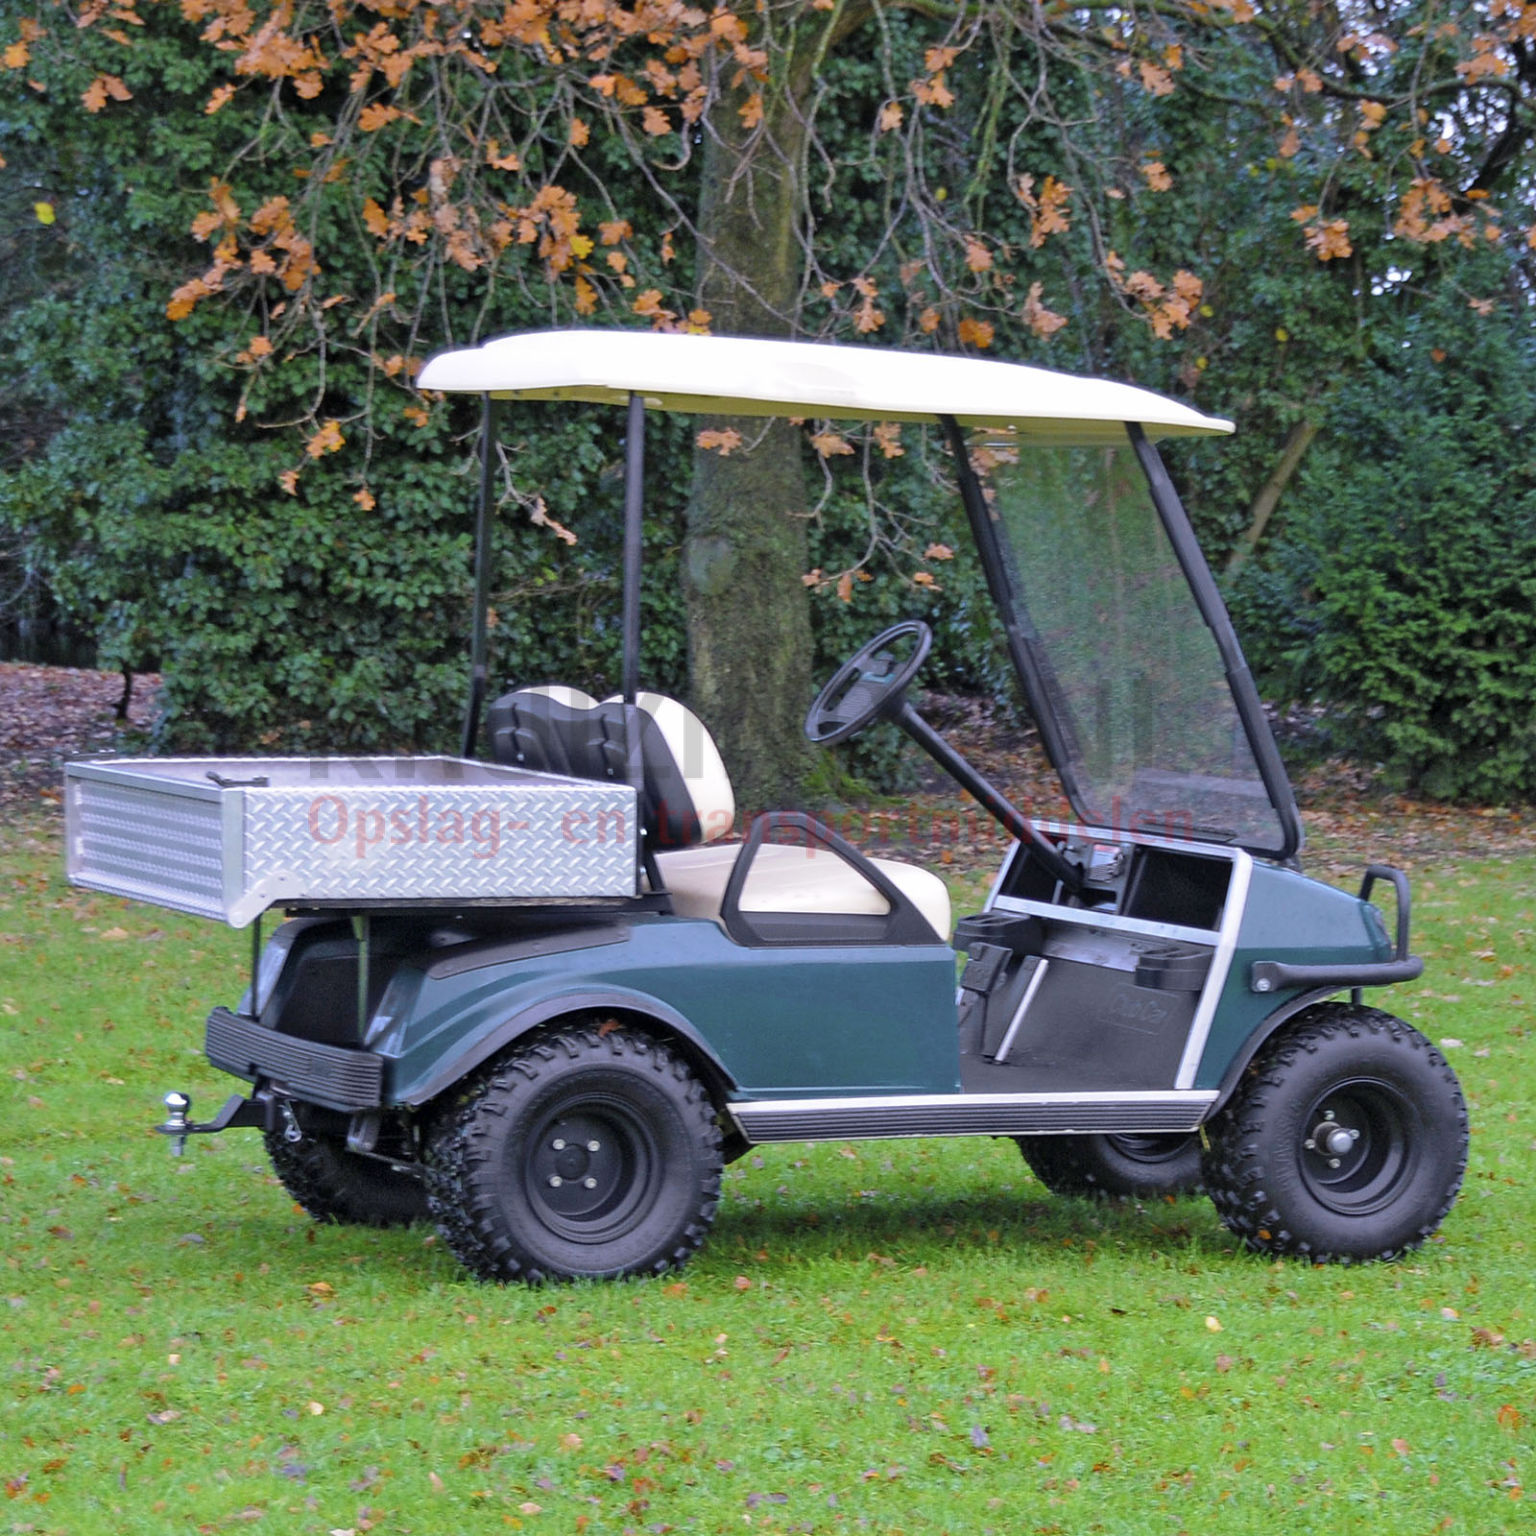 golf cart club car lynx pour 2 personnes essence occasion. Black Bedroom Furniture Sets. Home Design Ideas